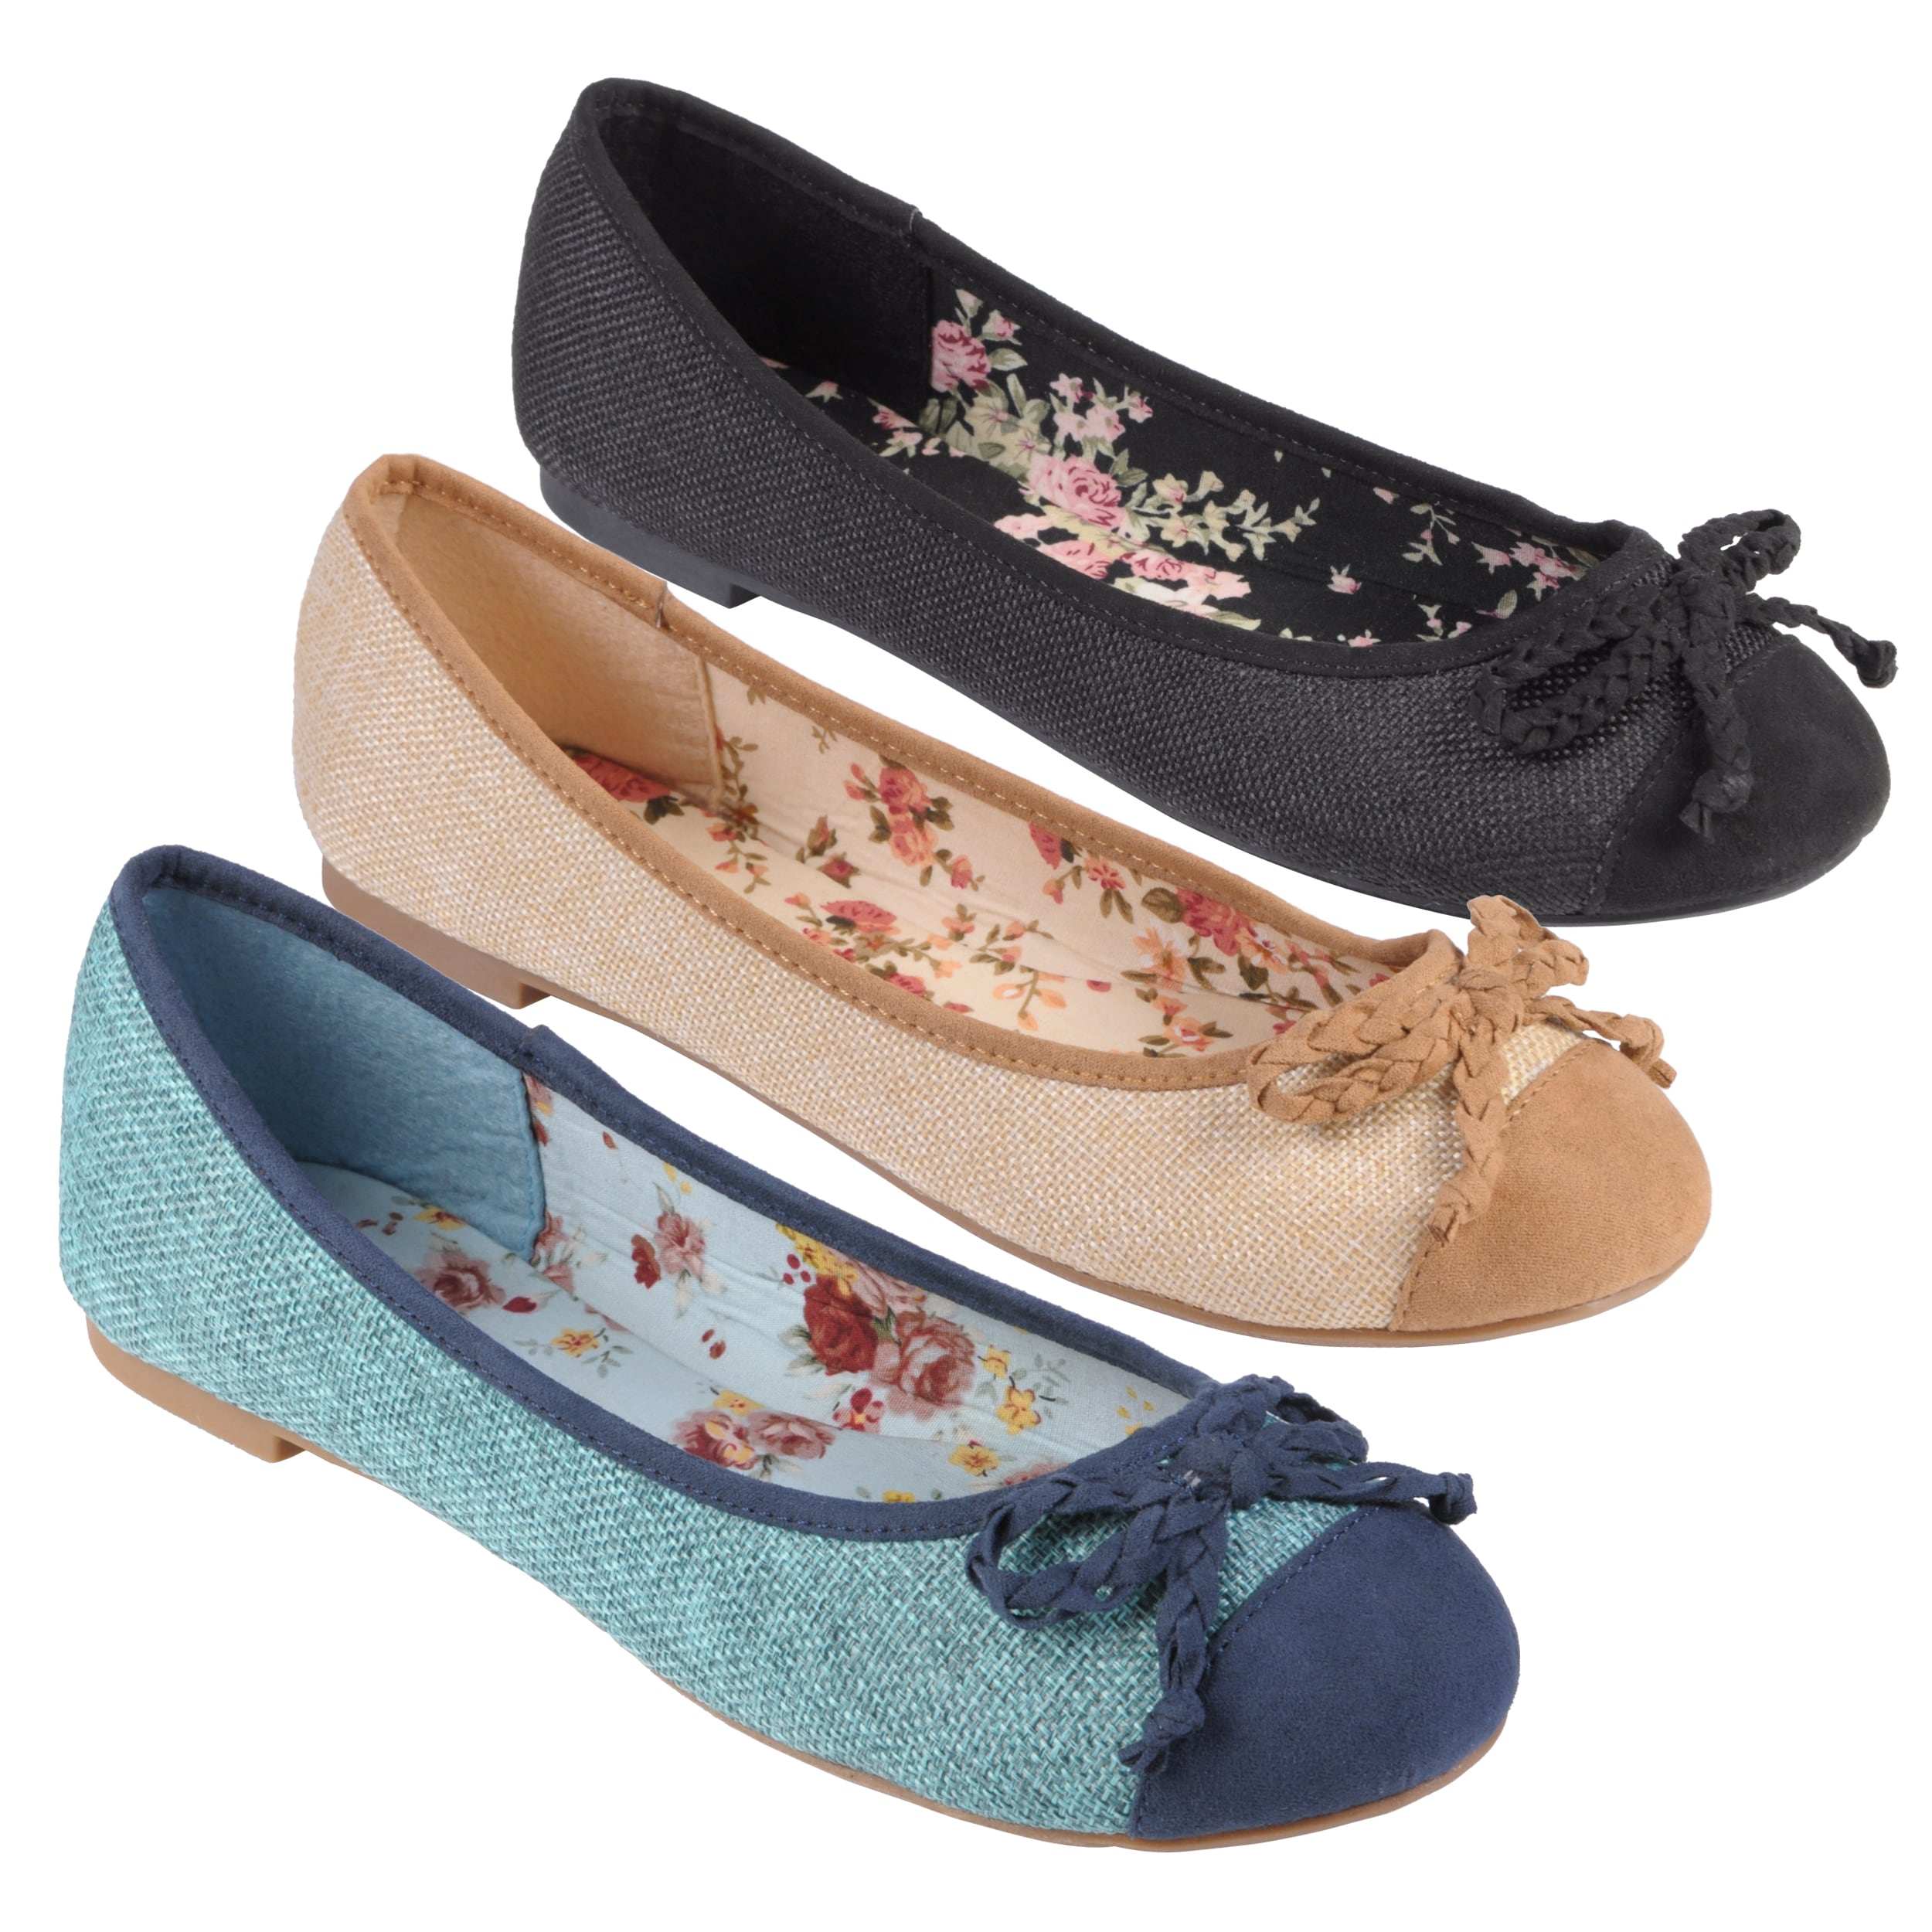 Tressa Collection Women's 'Pacific' Round Toe Bow Accent Ballet Flats